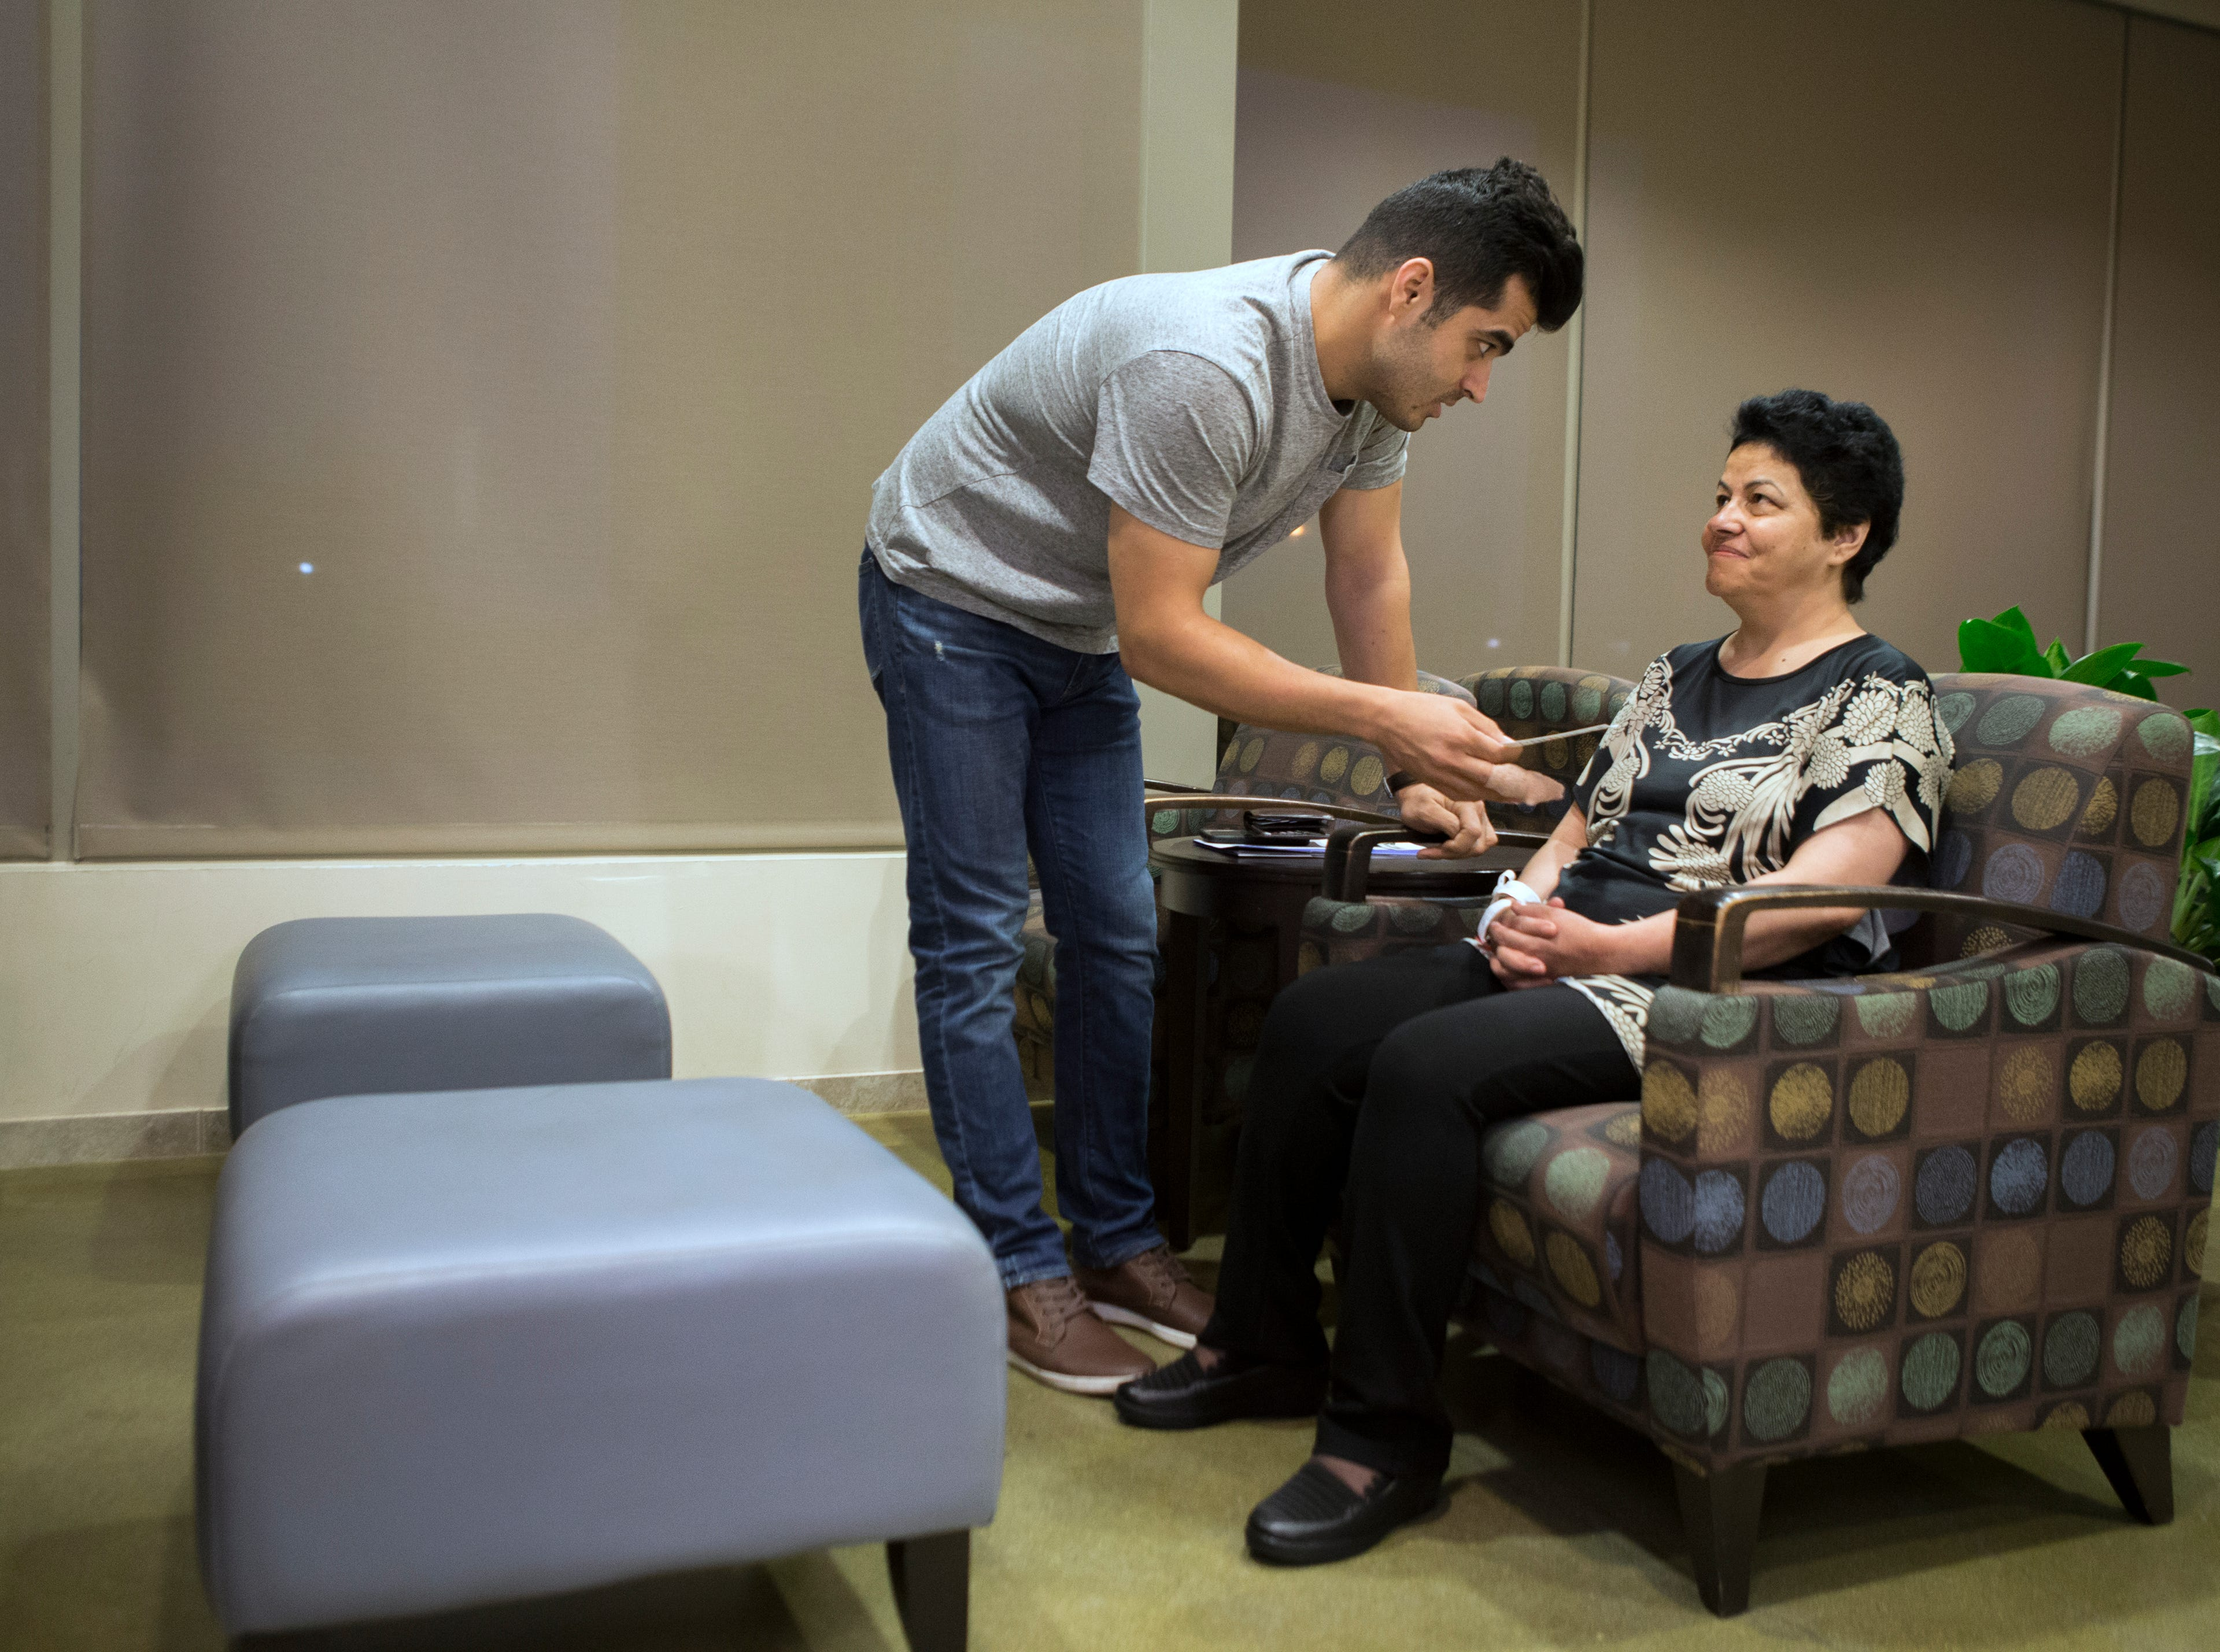 Mehran Jafari, left, talks with his mother Marzieh Taheri in the waiting room of Norton Brownsboro Hospital. Taheri received special permission to travel from Iran to receive treatment for radiation necrosis. Aug. 30, 2018.